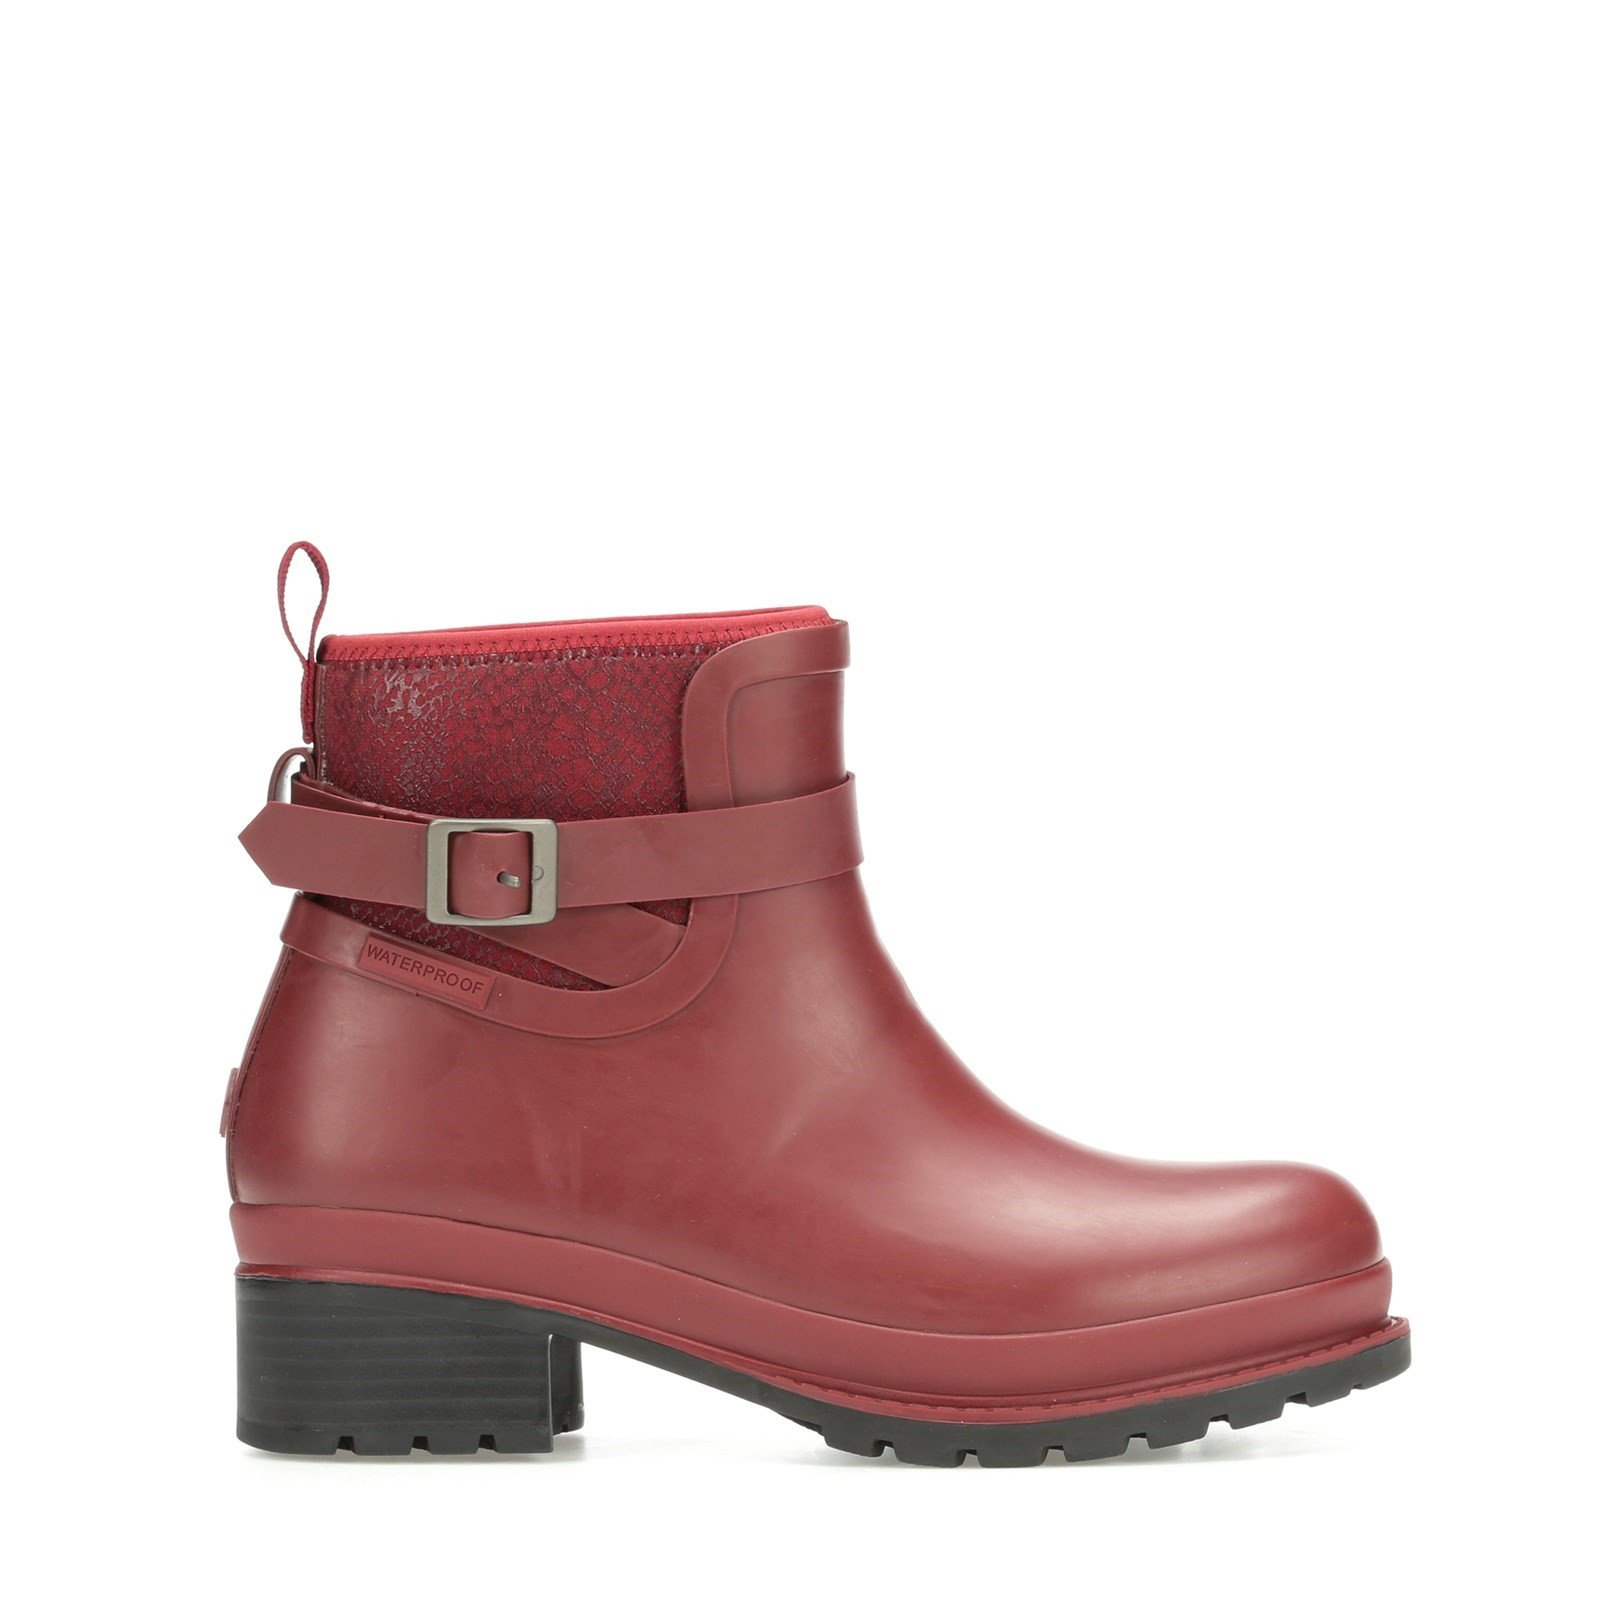 Muck Boots Women's Liberty Rubber Ankle Boots Various Colours 31816 - Cordovan 4